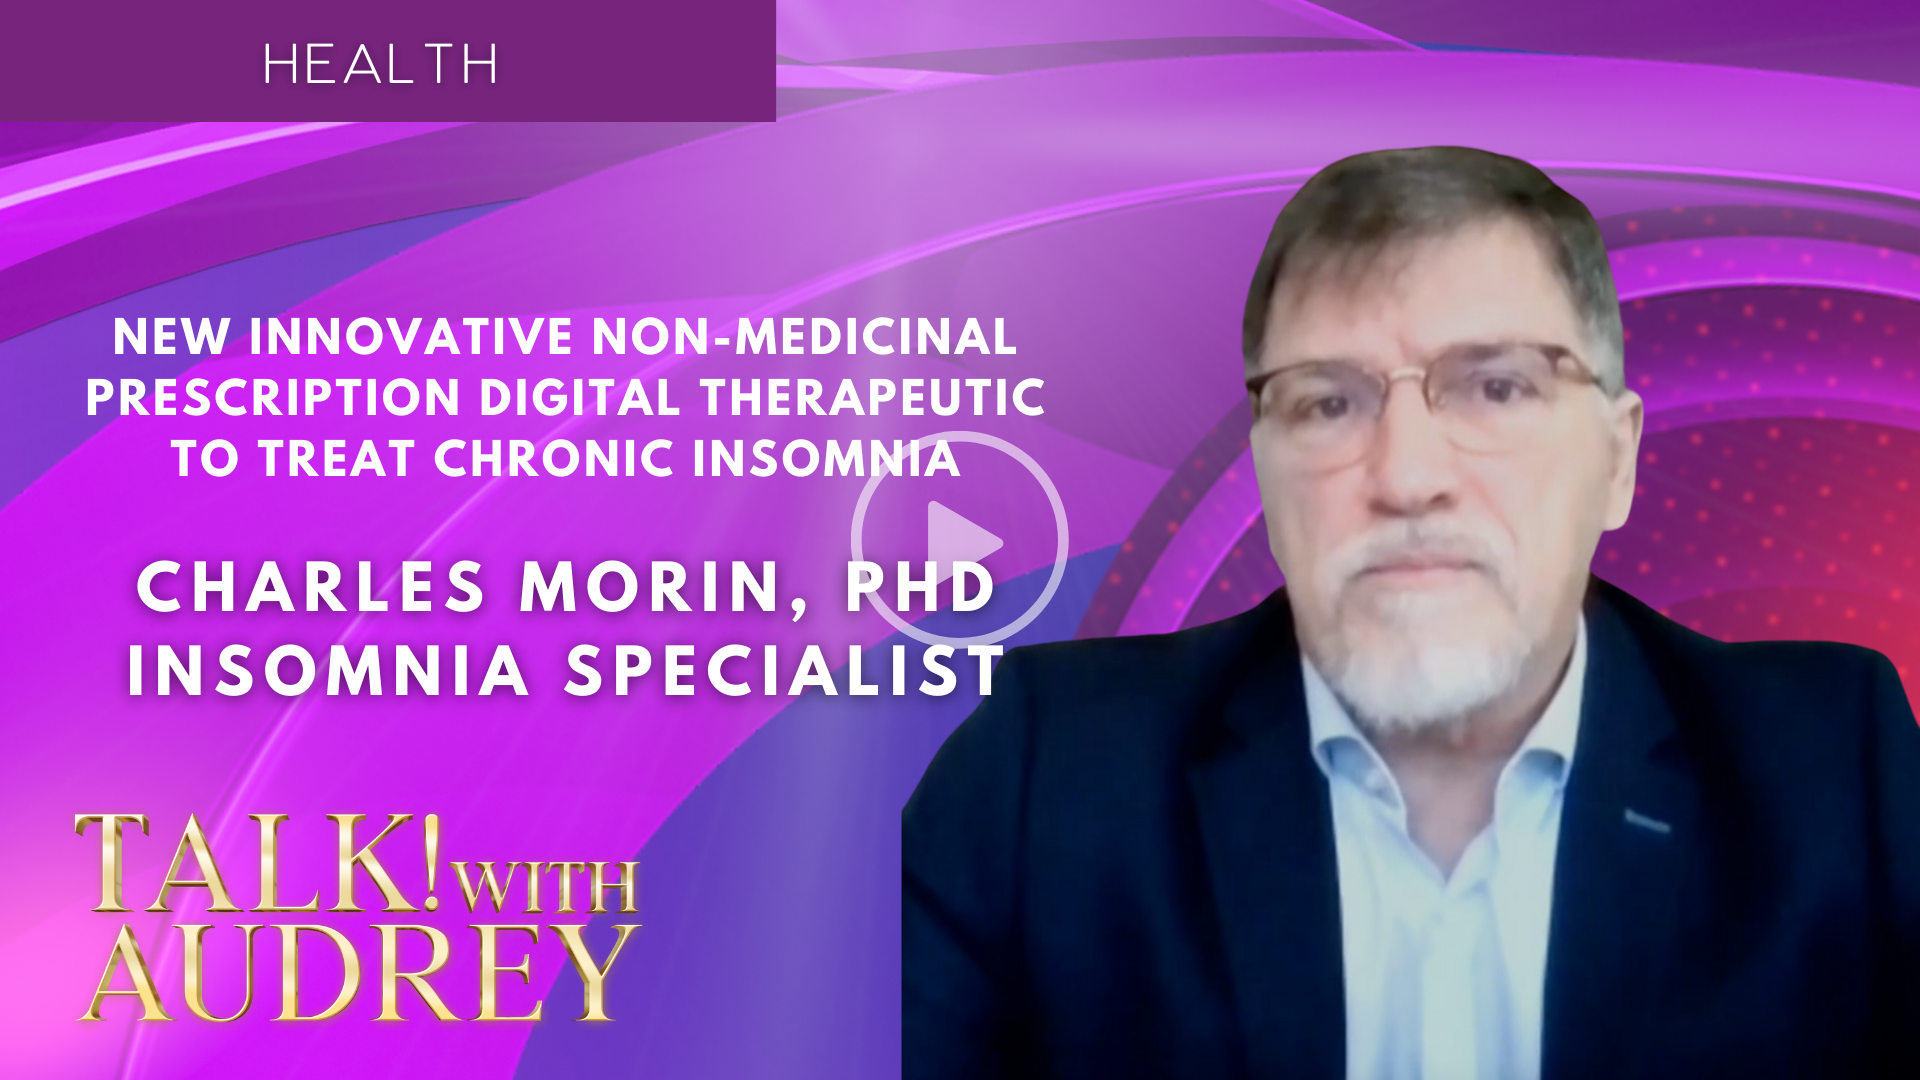 Charles Morin, PHD – New Innovative Non-Medicinal Prescription Digital Therapeutic to Treat Chronic Insomnia